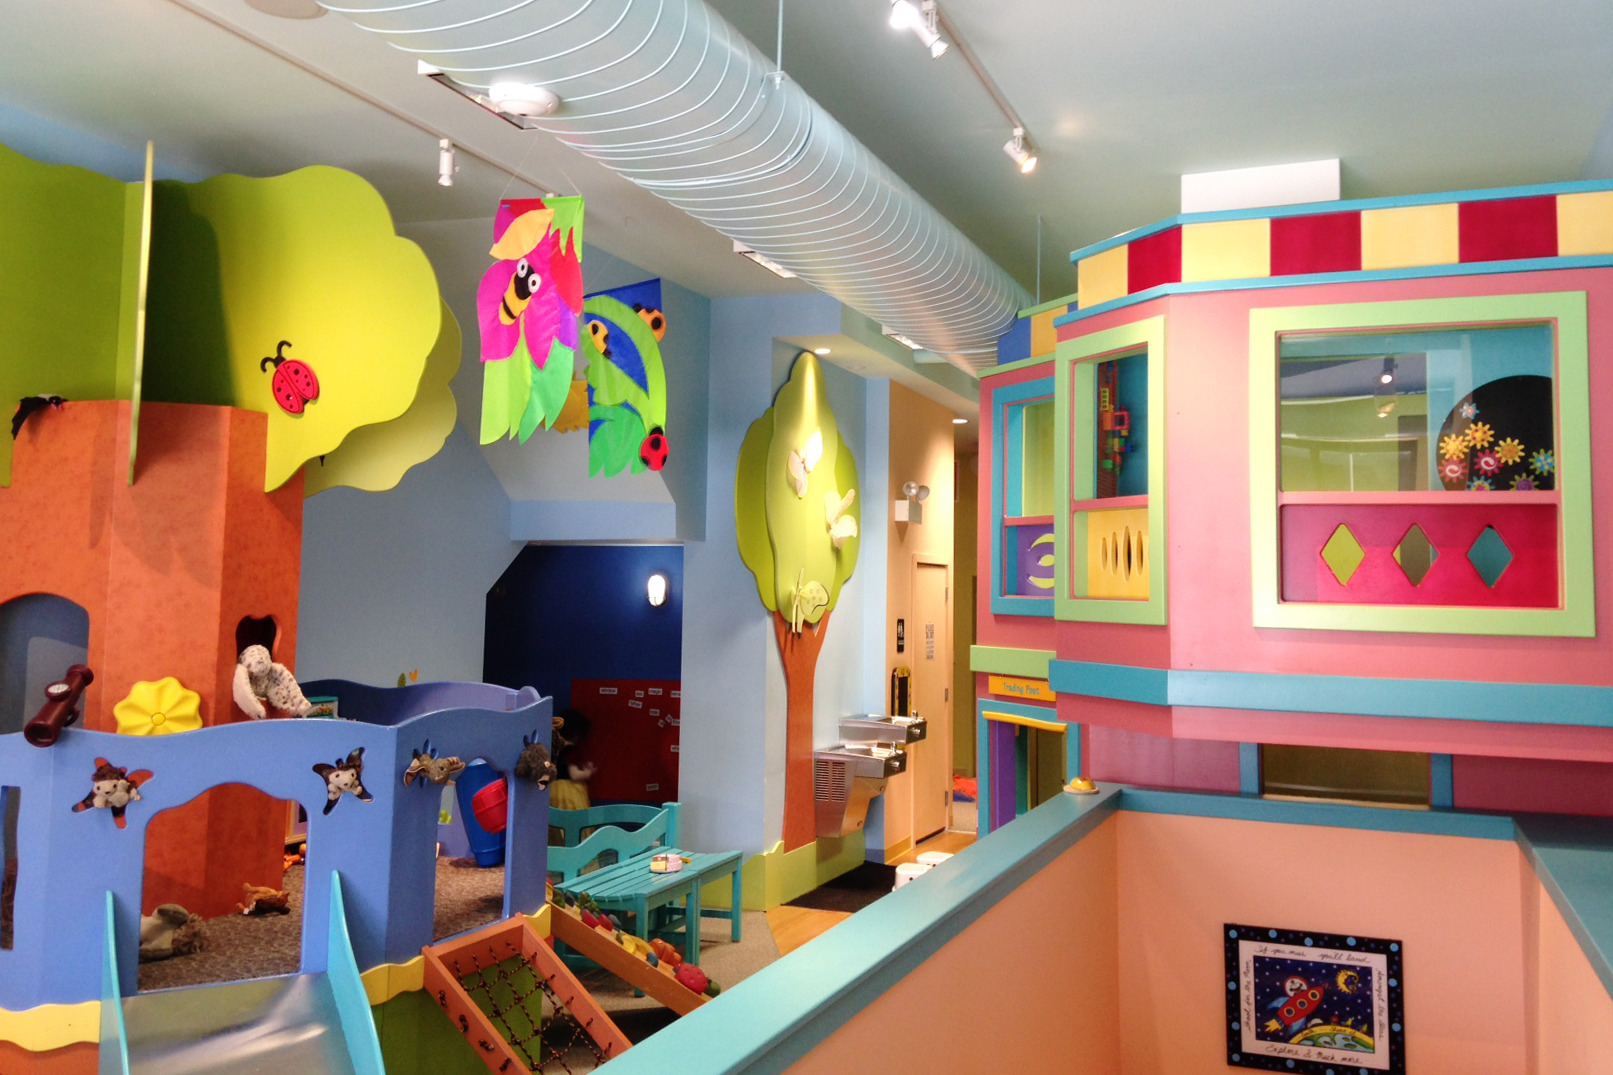 The best indoor playgrounds